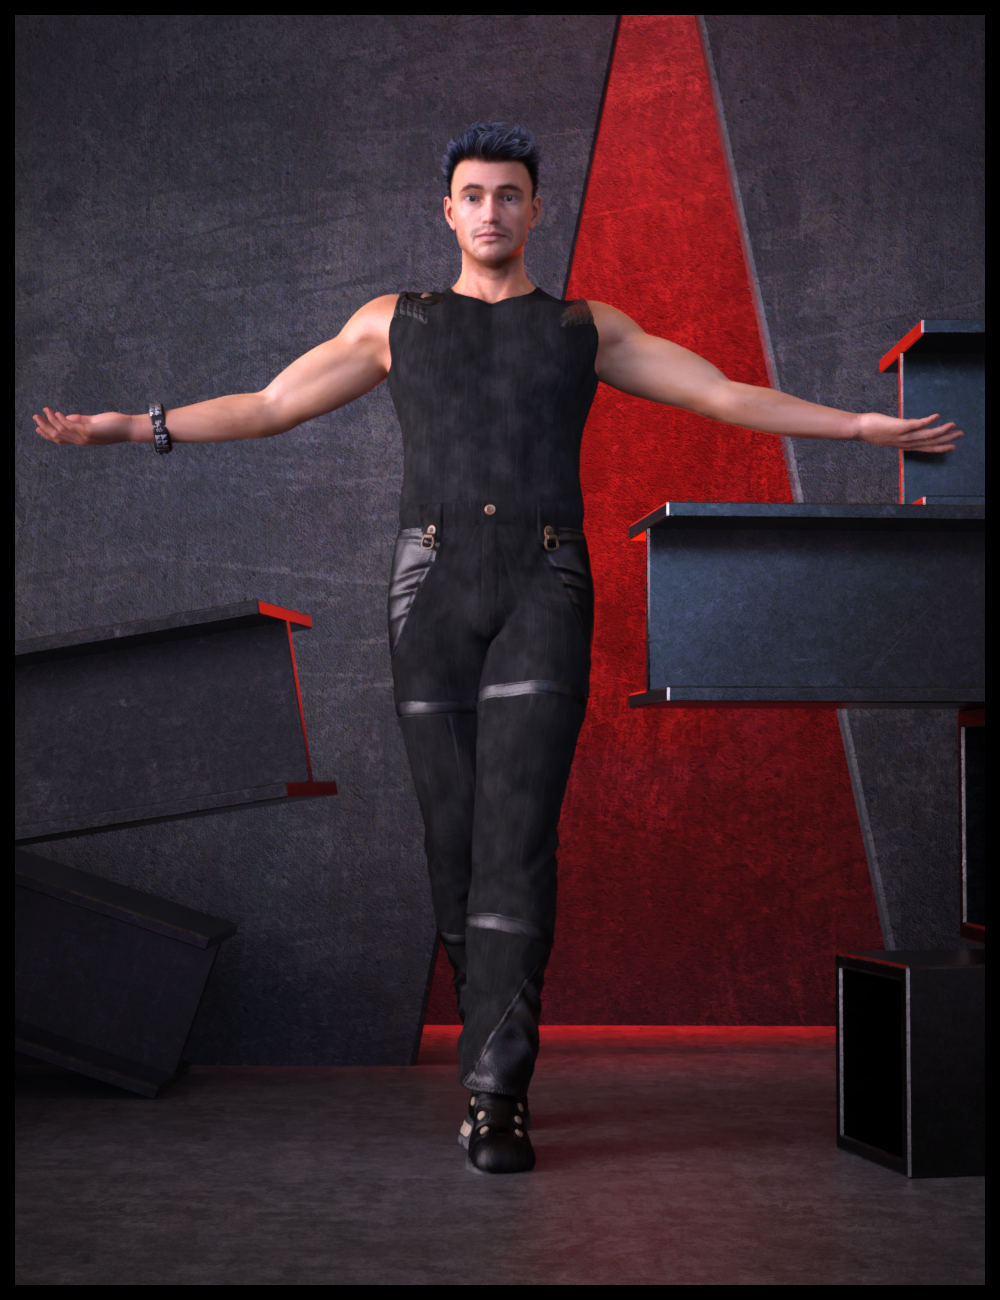 PunkRaveM Outfit for Genesis 8.1 Male by: Nathy, 3D Models by Daz 3D